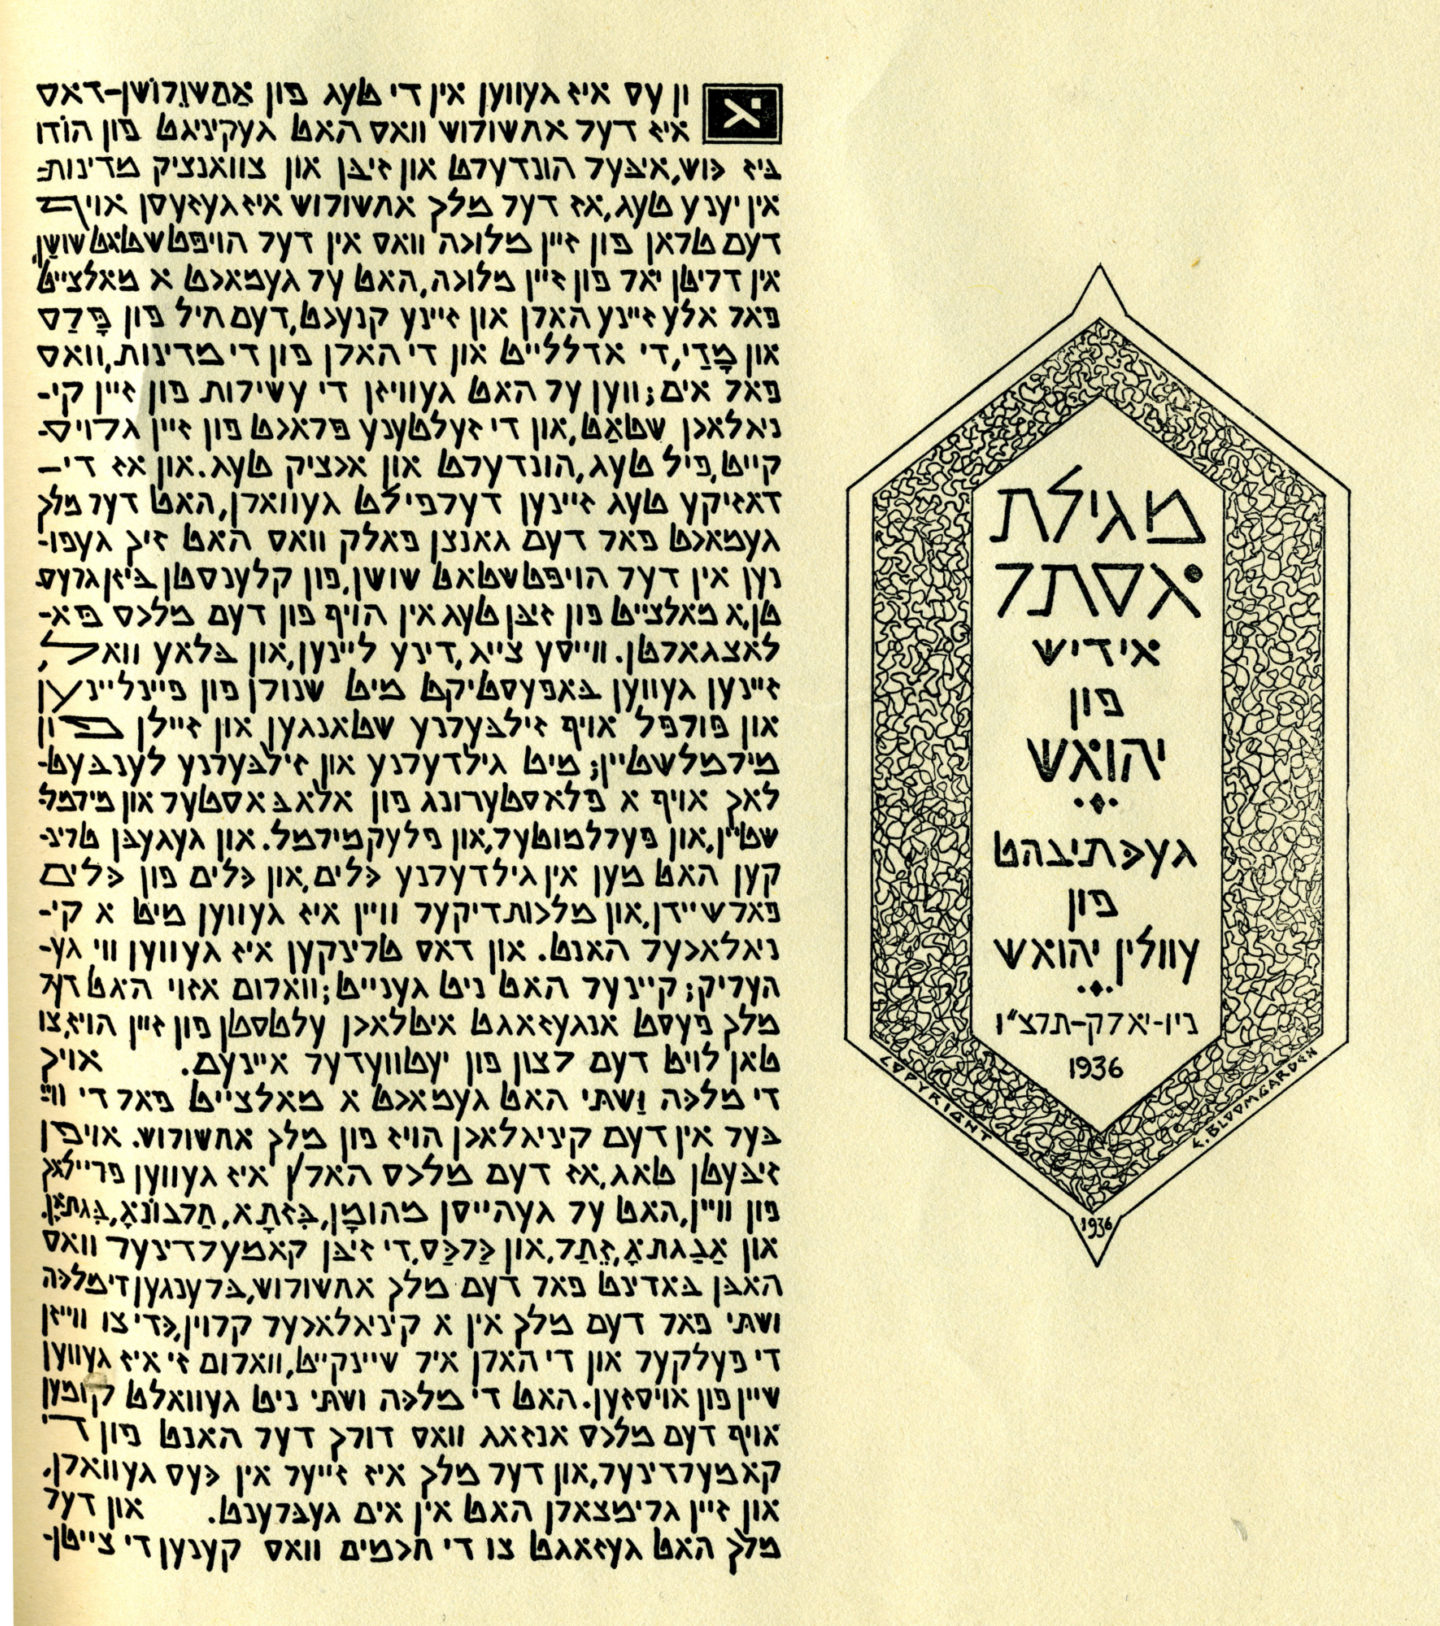 <p><em>Megiles Ester</em>, translated into Yiddish by Yehoash, calligraphy by Evelyn Yehoash, published in New York in 1936. Image courtesy of the Yeshiva University&nbsp;Museum.</p>